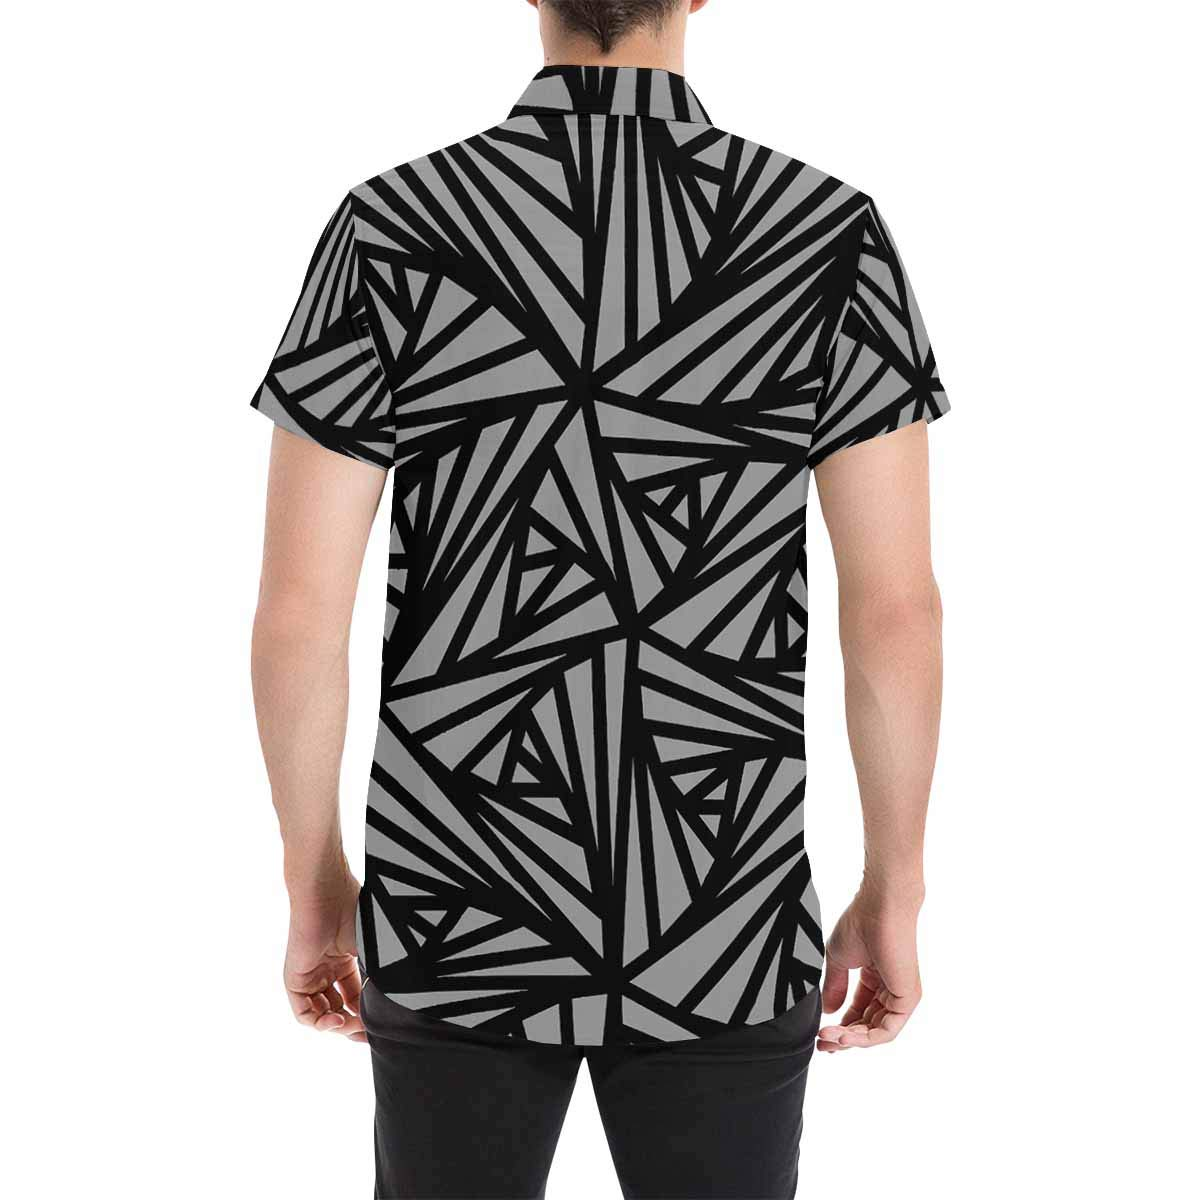 InterestPrint Black Geometric Stand Collar Casual Regular Fit Short Sleeve Shirt for Men